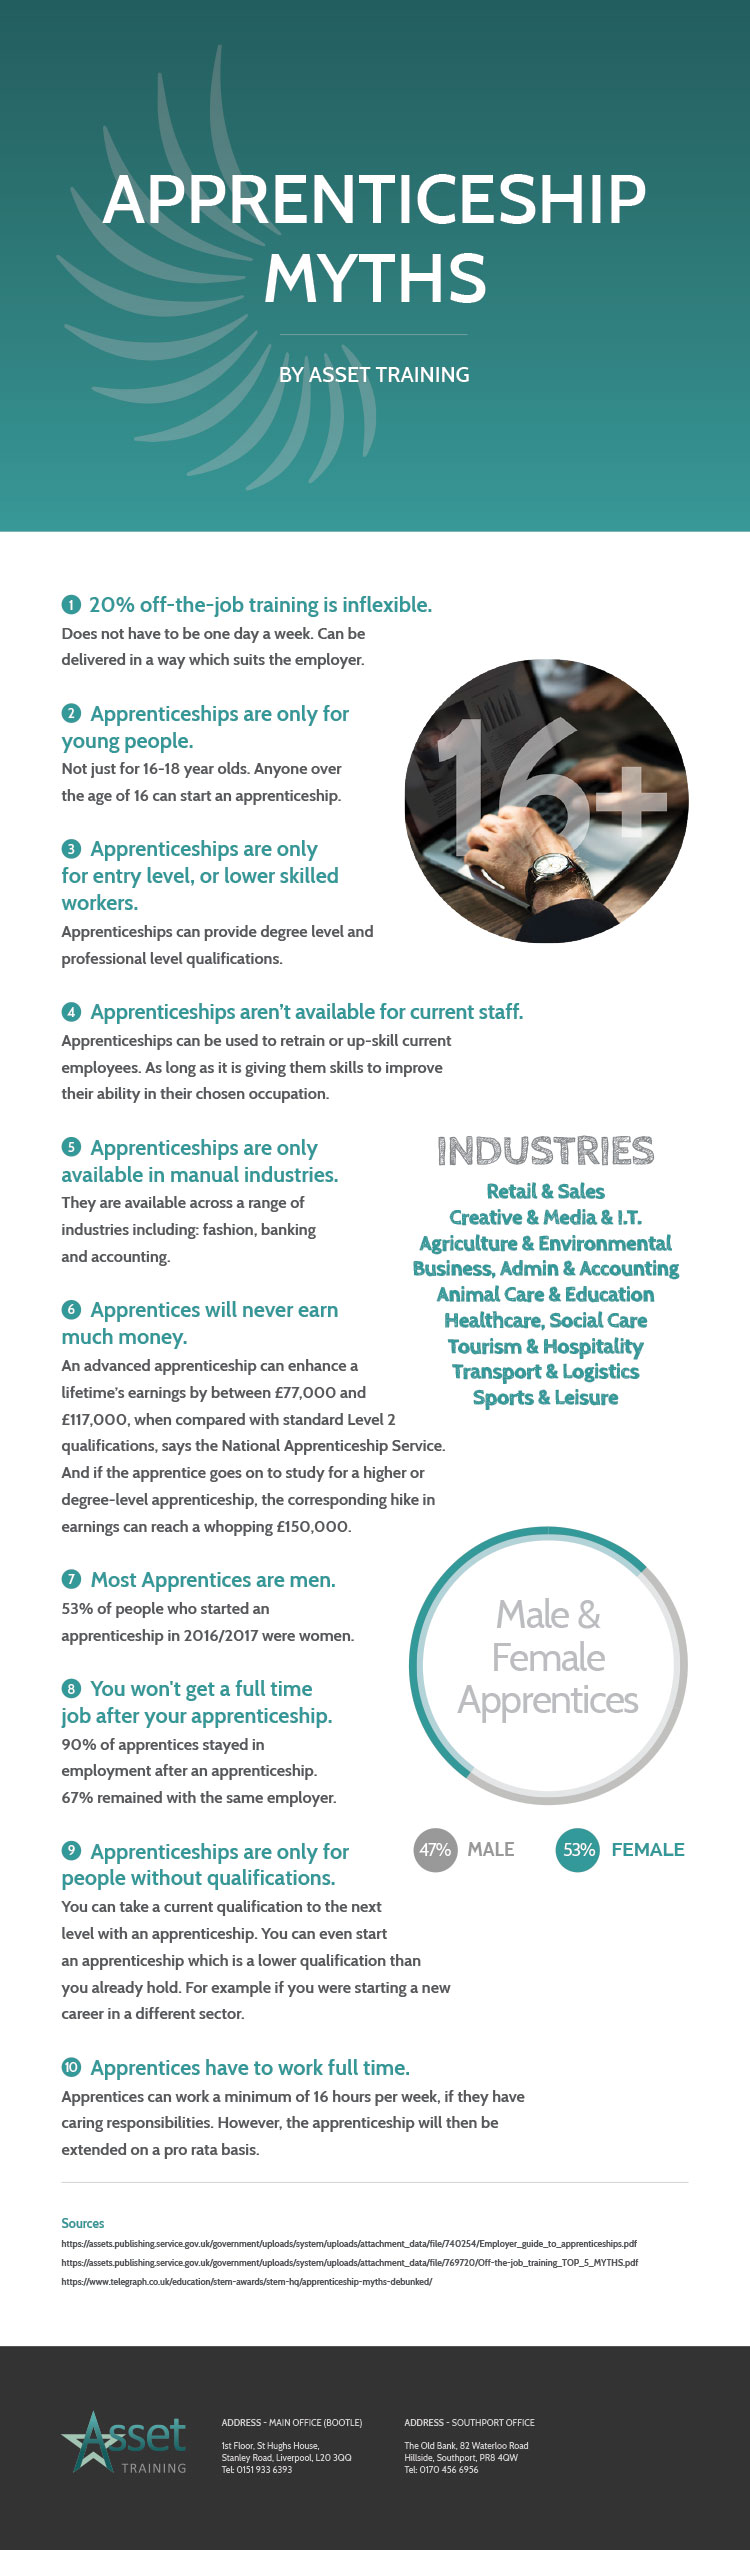 top 10 apprenticeship myths infographic